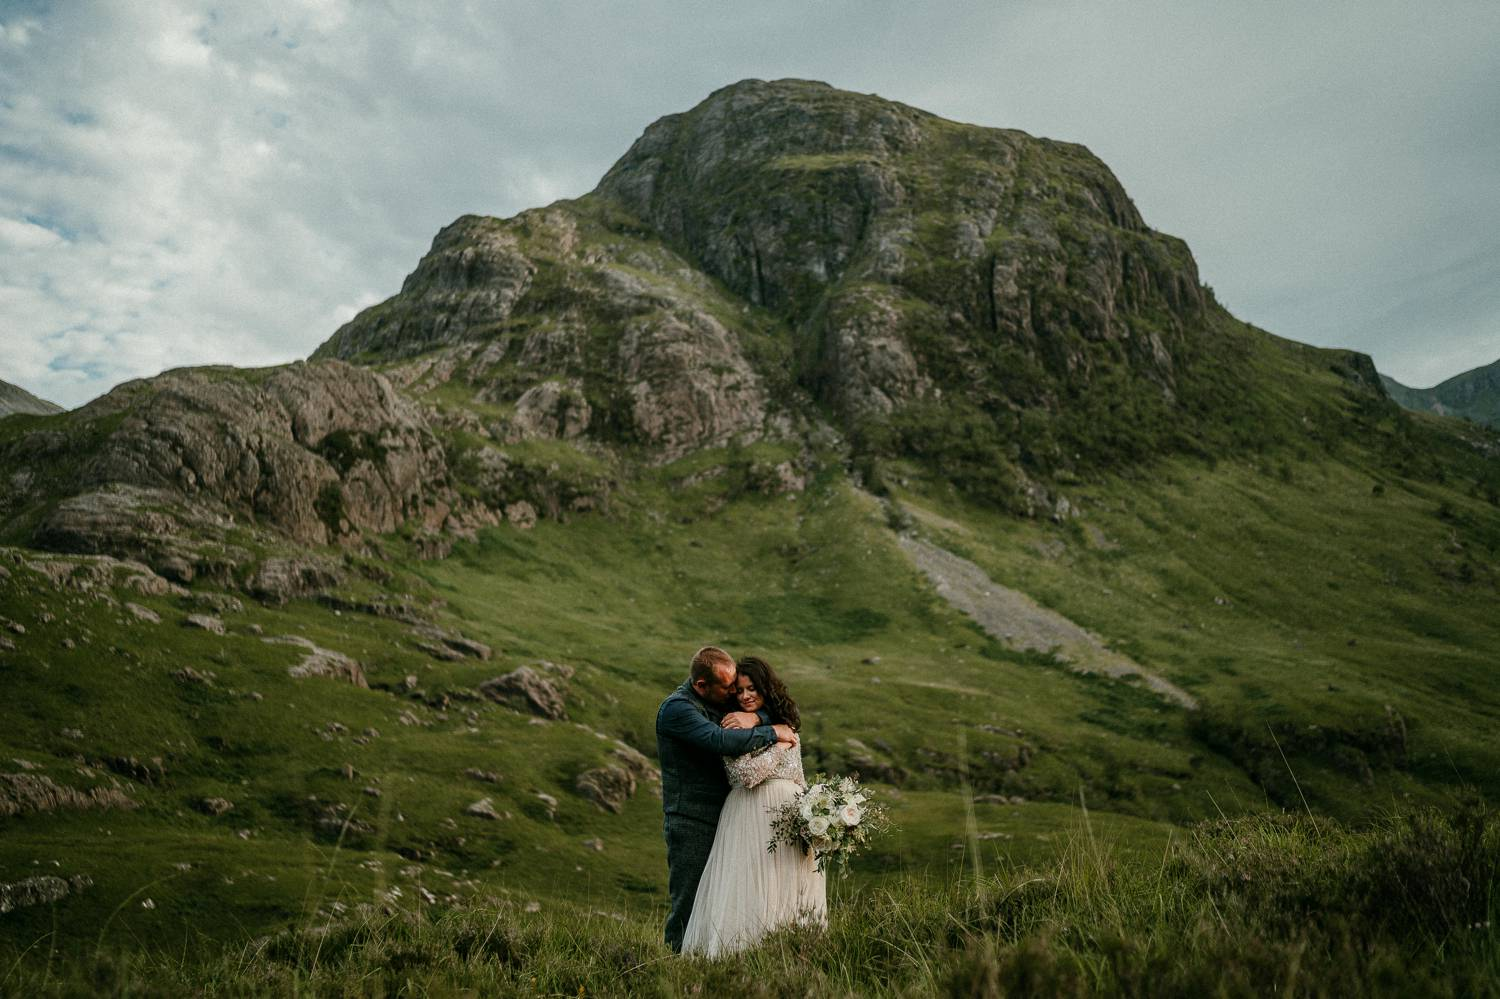 A bride and groom embrace on the wide, green hills of Ireland. Photograph by Rob Dight.